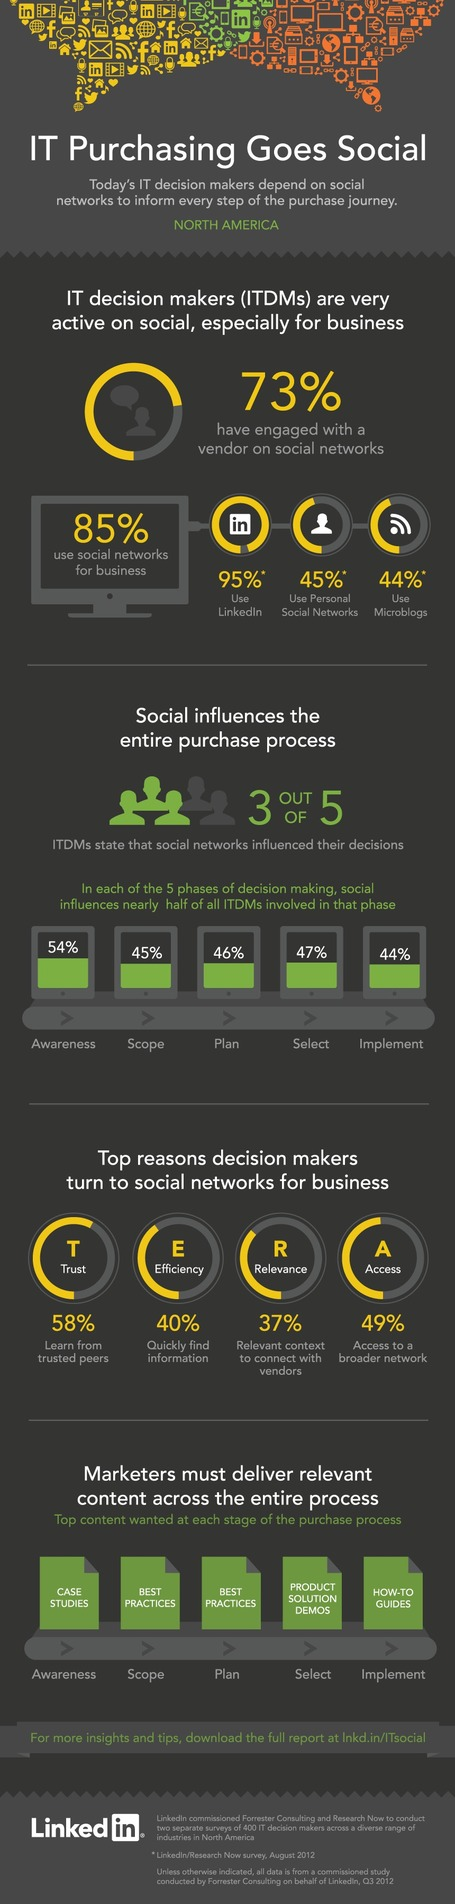 #Infographic : How #SocialMedia Impacts Purchasing Decisions... | Pedalogica: educación y TIC | Scoop.it